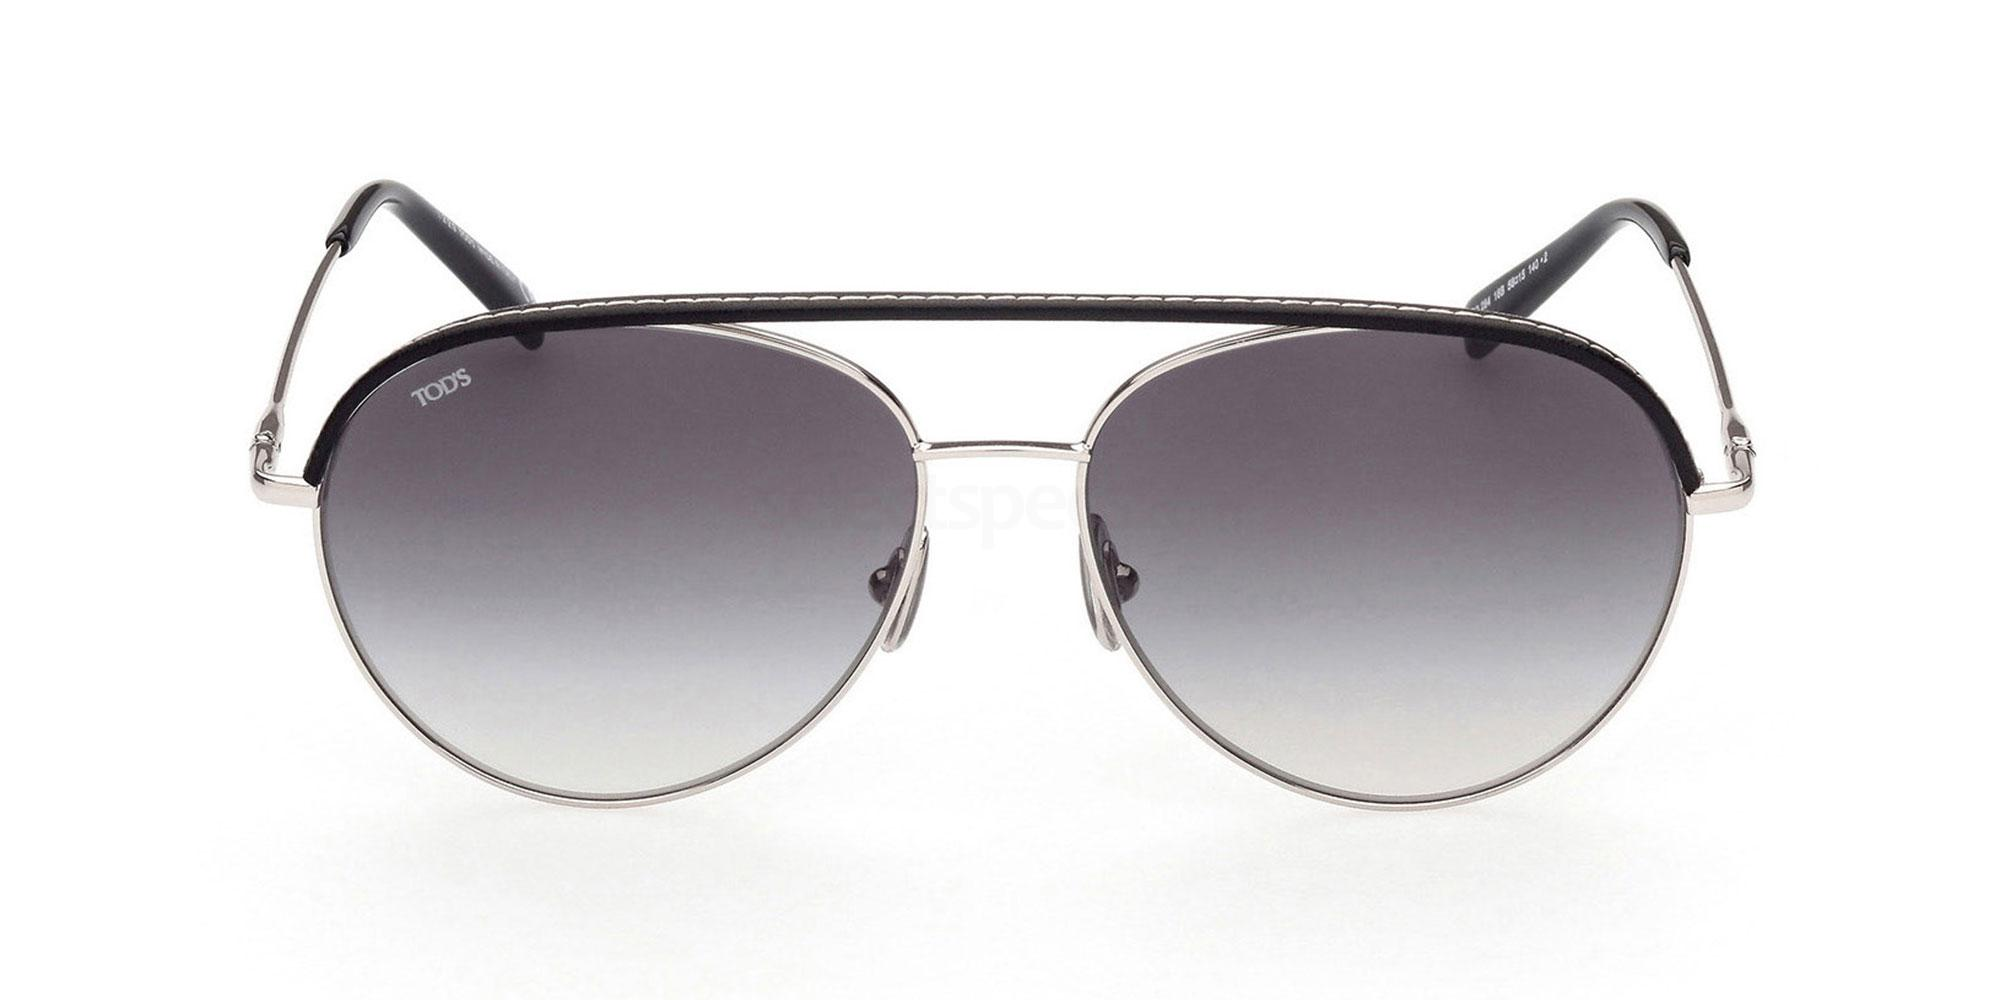 16B TO0284 Sunglasses, TODS